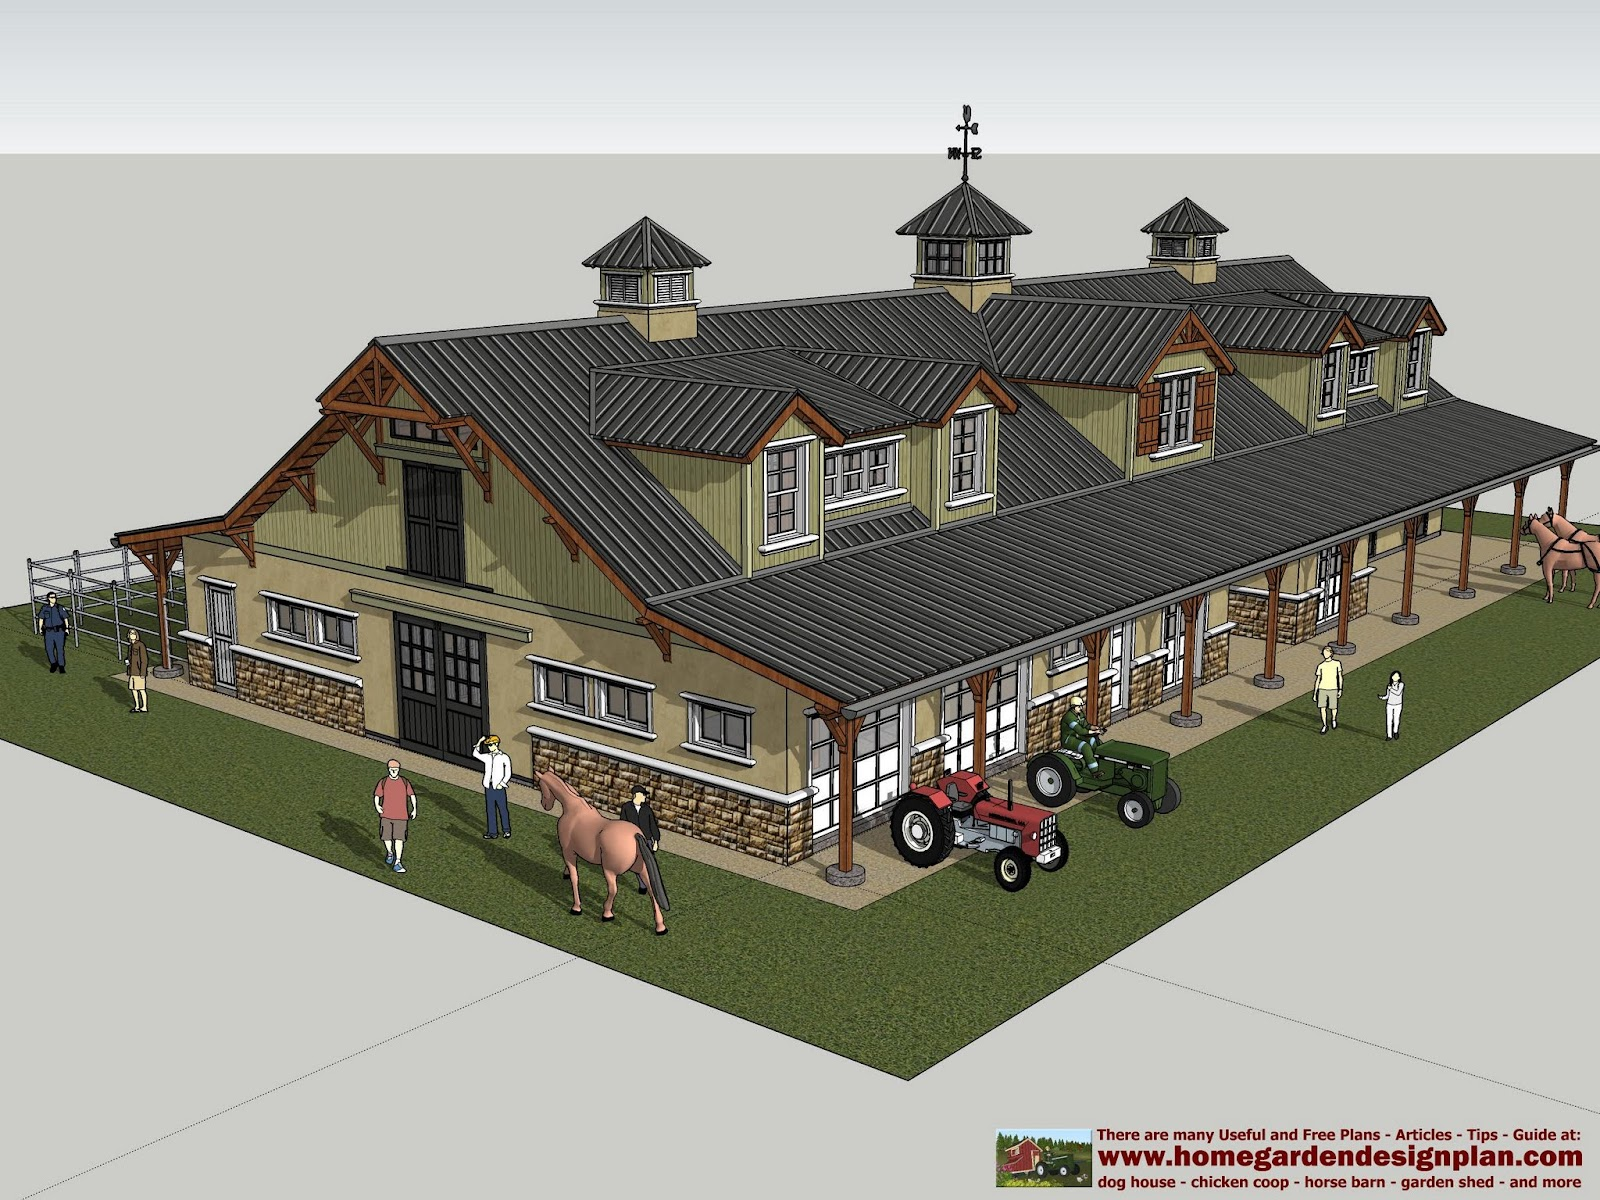 Home garden plans hb100 horse barn plans horse barn for Barn construction designs